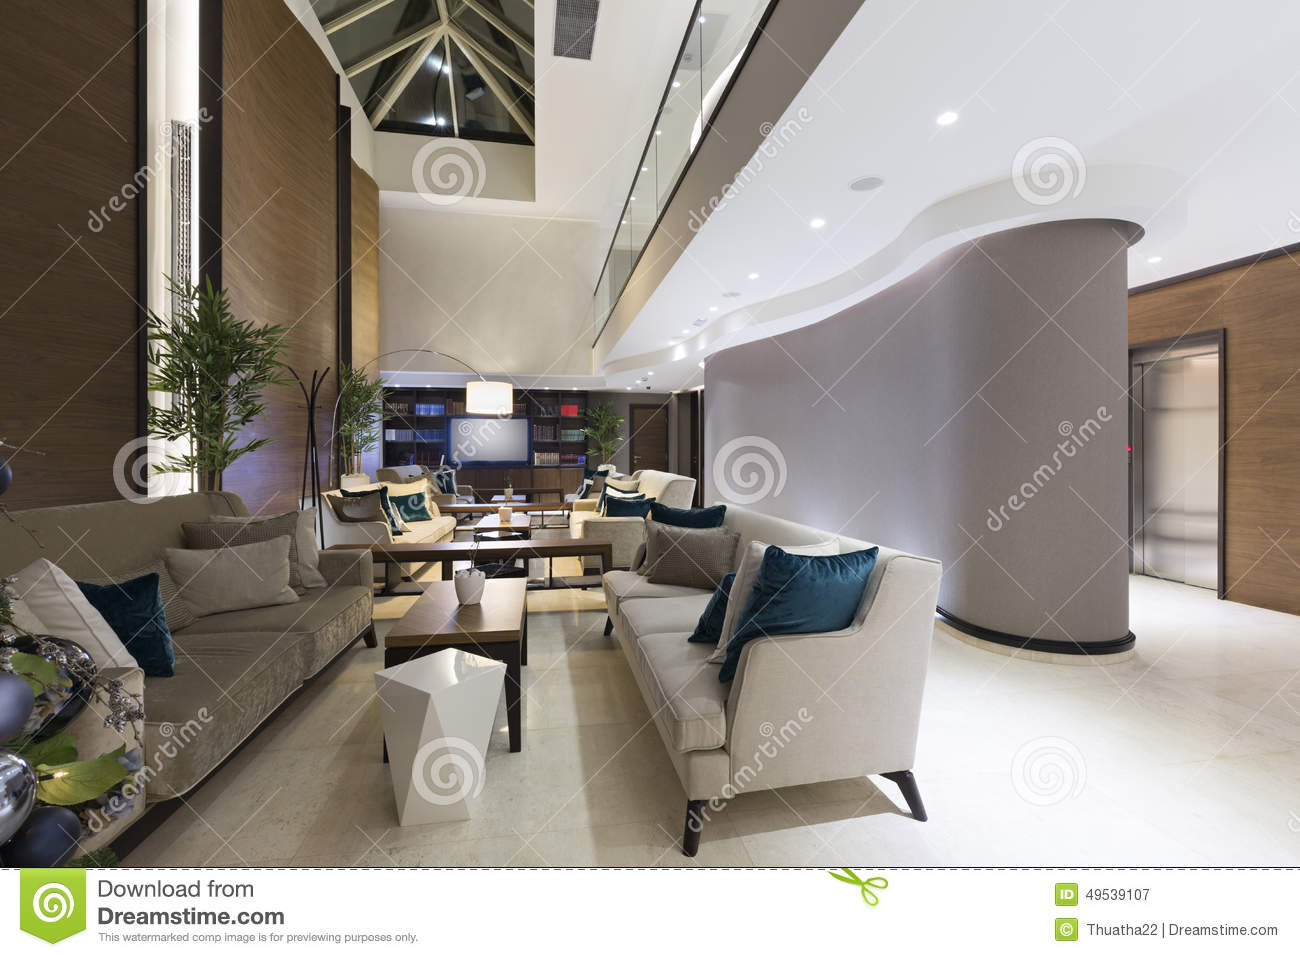 Modern Hotel Lobby Cafe Interior Stock Photo Image 49539107